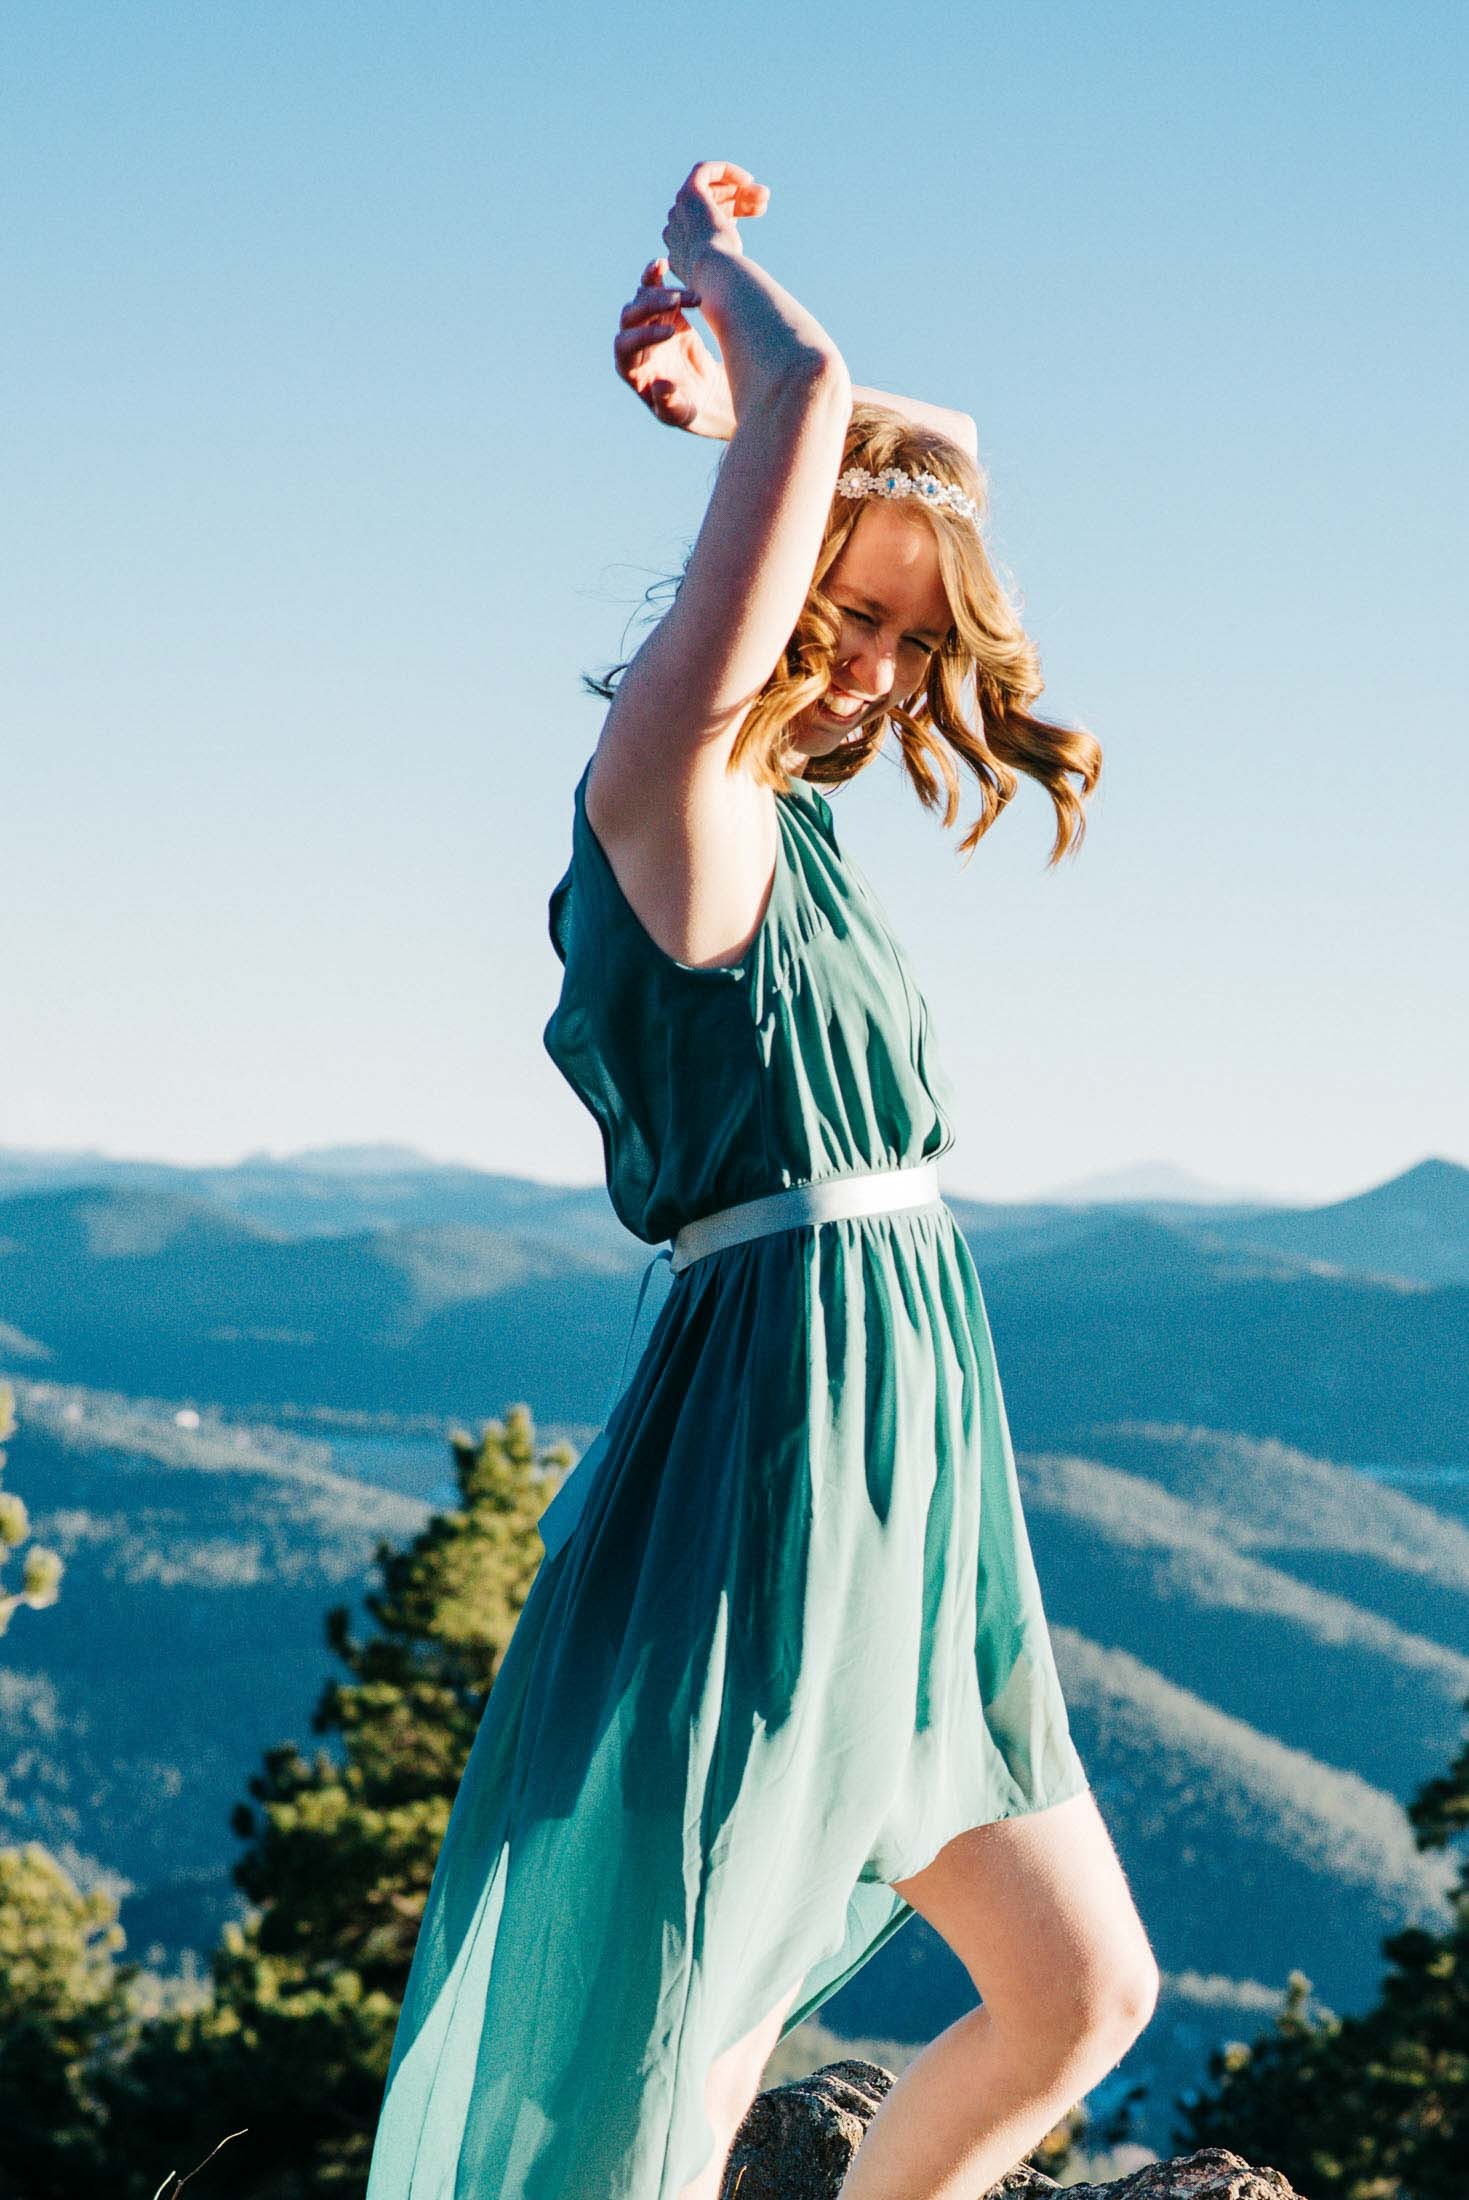 01-emmy-searching-for-the-light-photography-colorado-photographer-elopement-photographer-dance-photographer-couple-photographer_mountain-wedding-photographer-self-portraits-2016-215.jpg